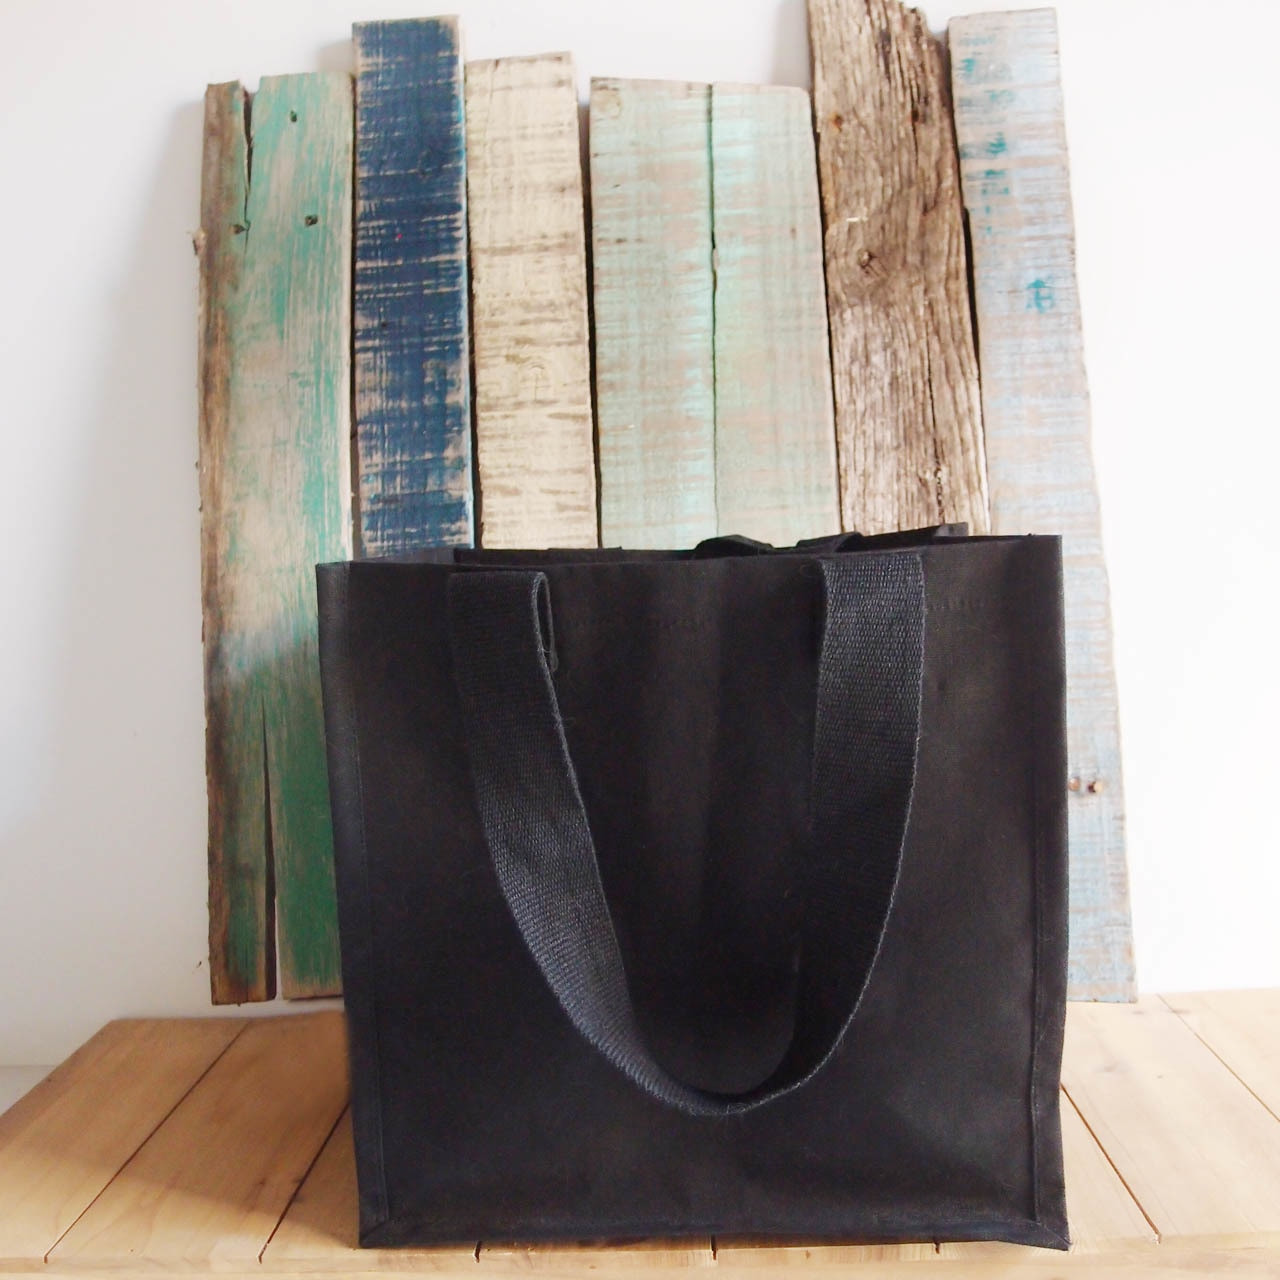 """Black Canvas Shopping Tote Bag 12"""" W x 12"""" H x 7 3/4"""" Gusset B890-89, Wholesale Black Canvas Tote Bags, Wholesale Cotton Bags 